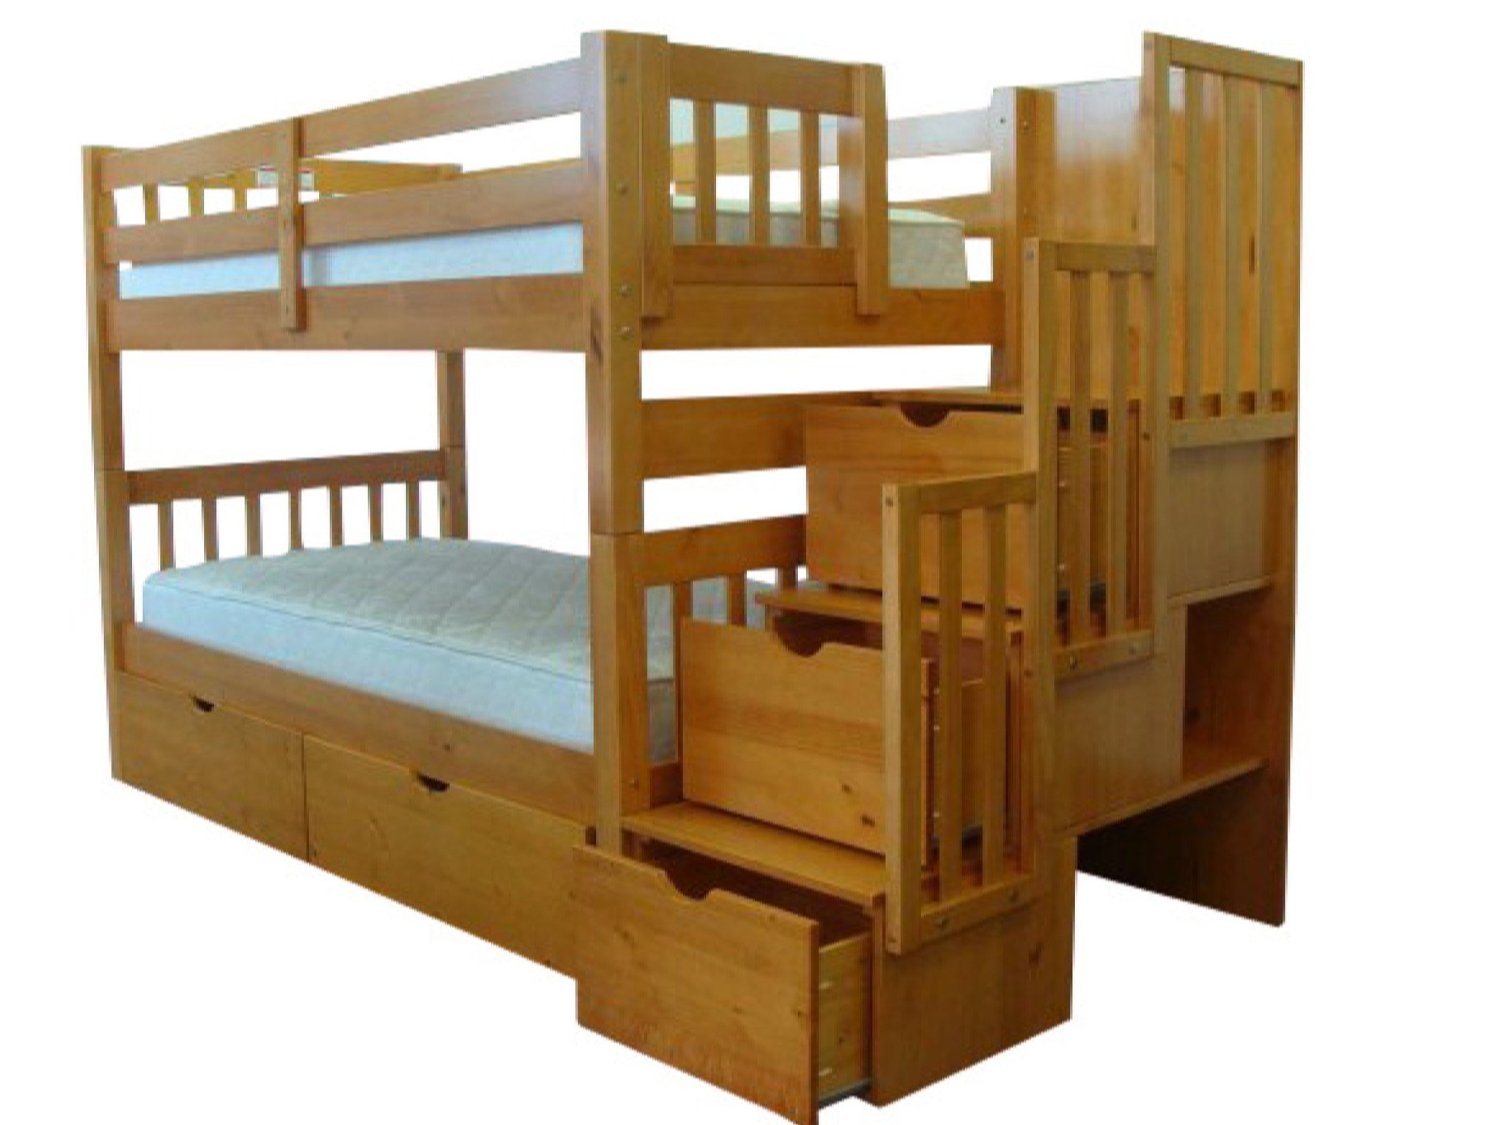 Picture of: Buy Bedz King Stairway Bunk Beds Twin Over Twin With 3 Drawers In The Steps And 2 Under Bed Drawers Honey In Cheap Price On M Alibaba Com